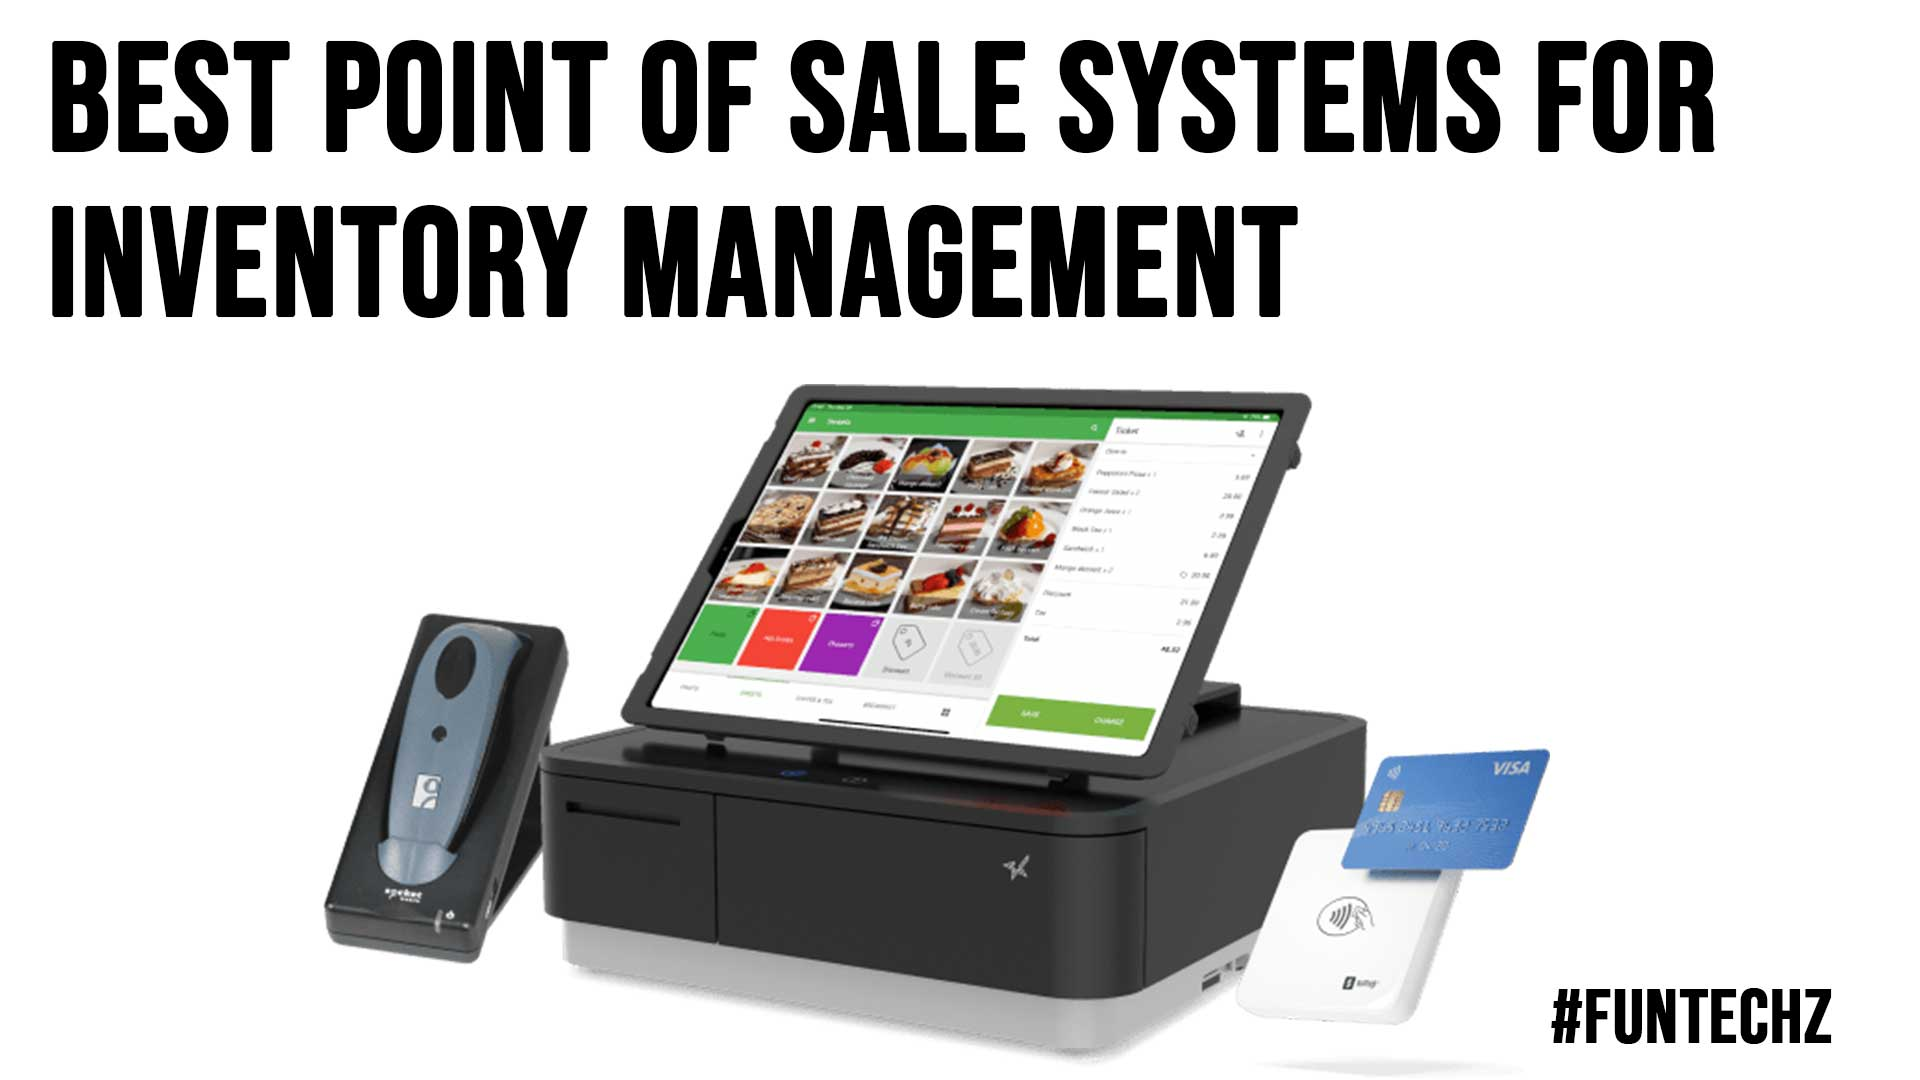 Best Point of Sale Systems for Inventory Management